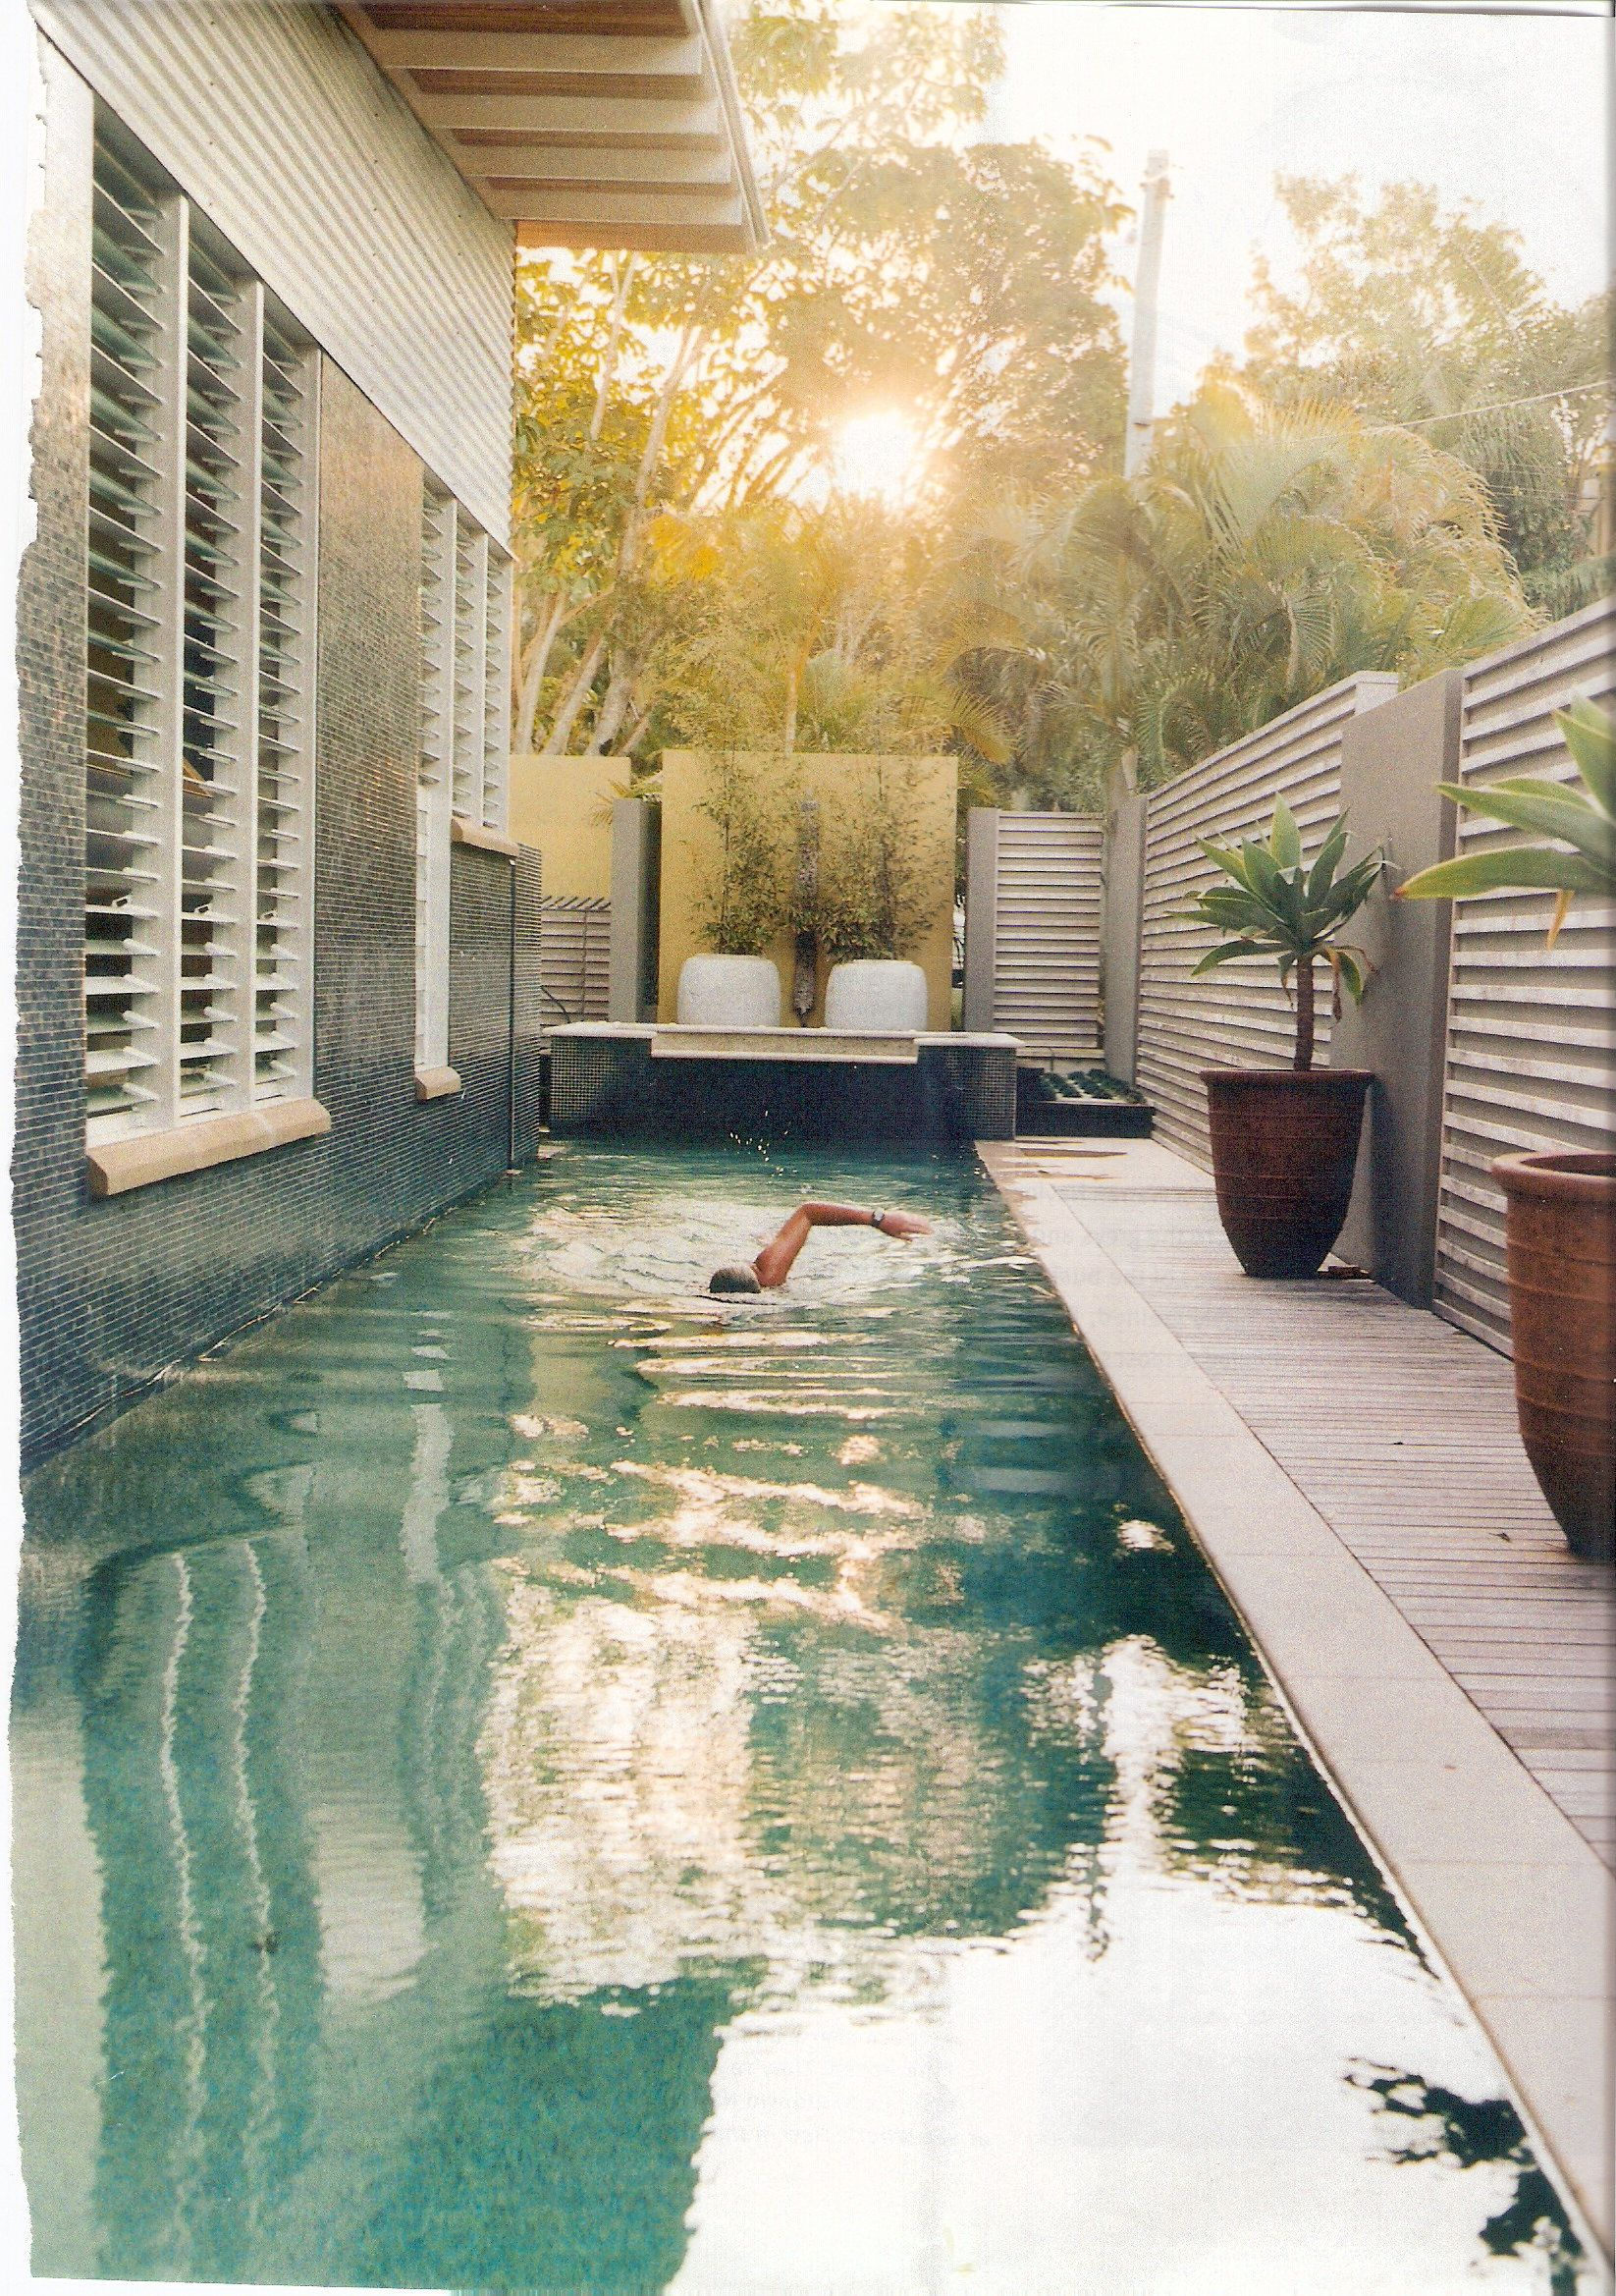 Spa Exterieur Gifi Via Magazine Clippings More M A I S O N Piscine